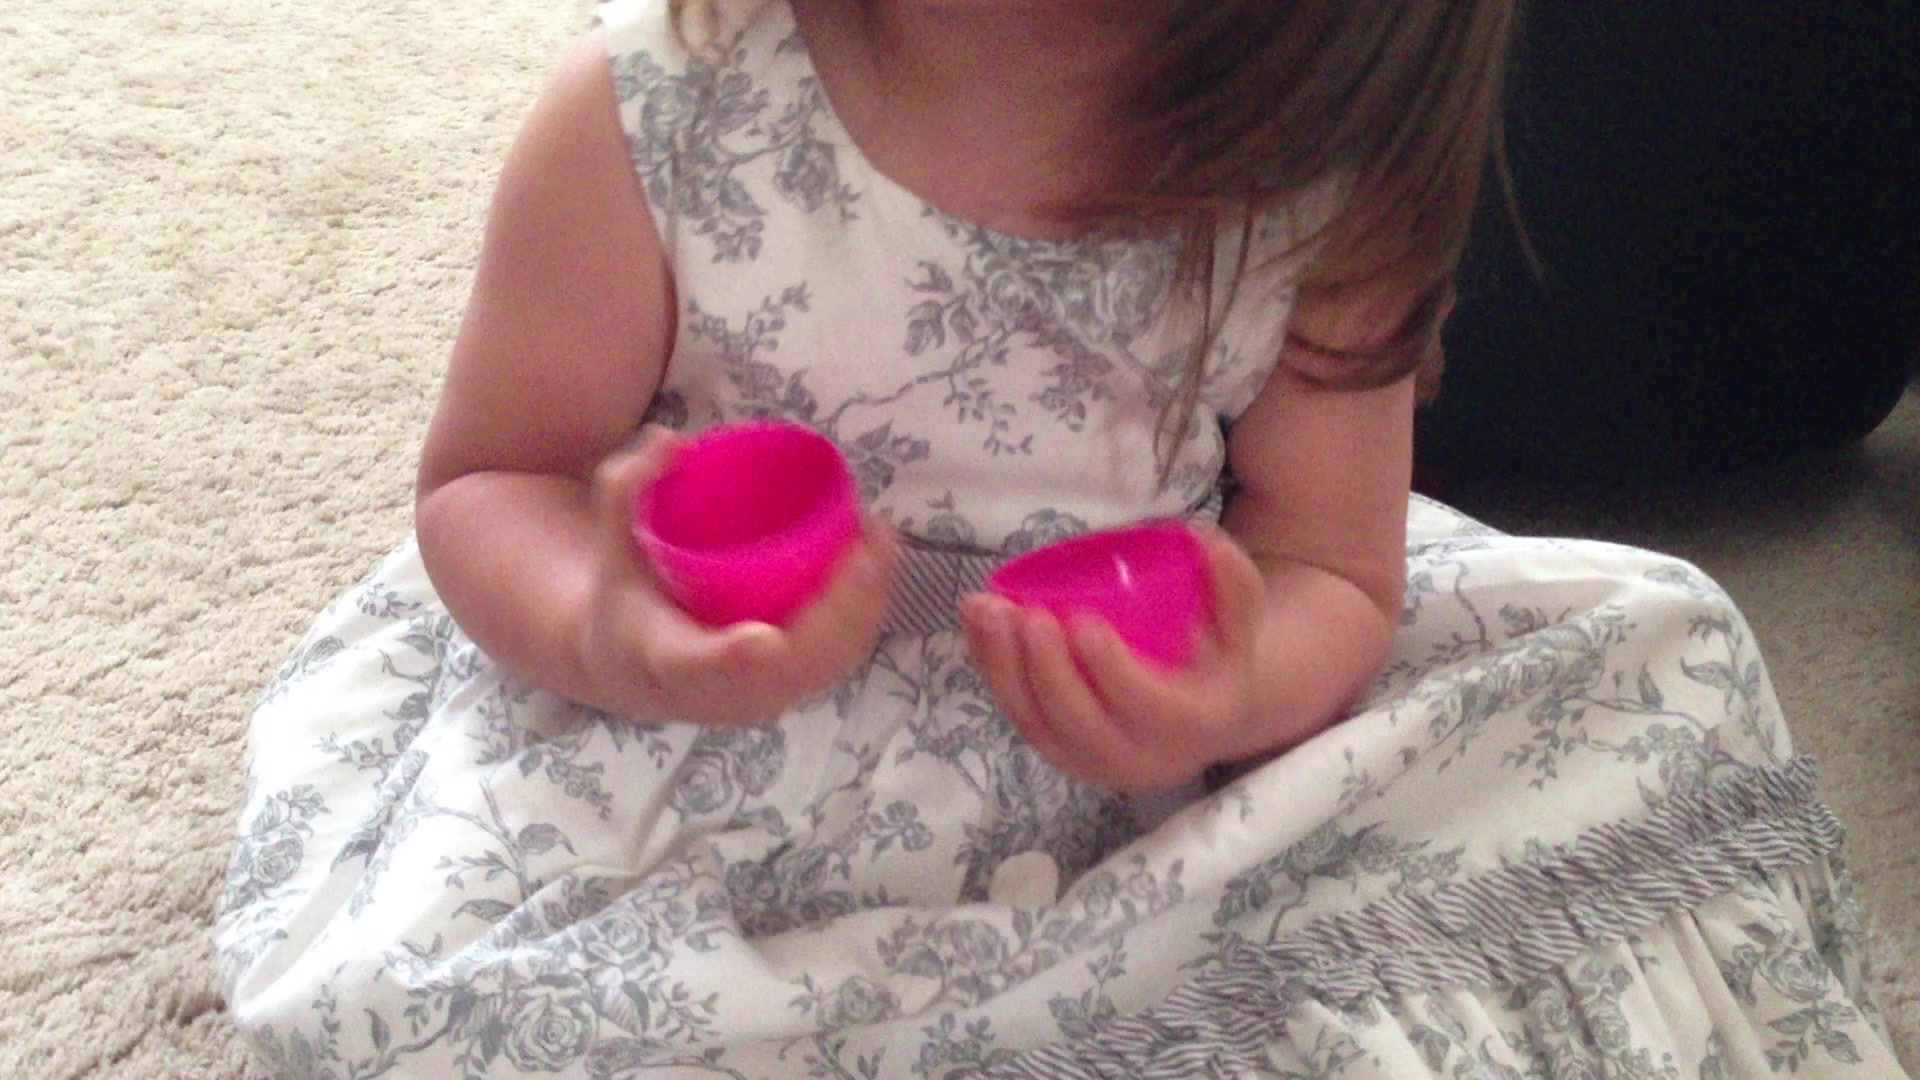 Little Girl Eats Easter Bunny Poop